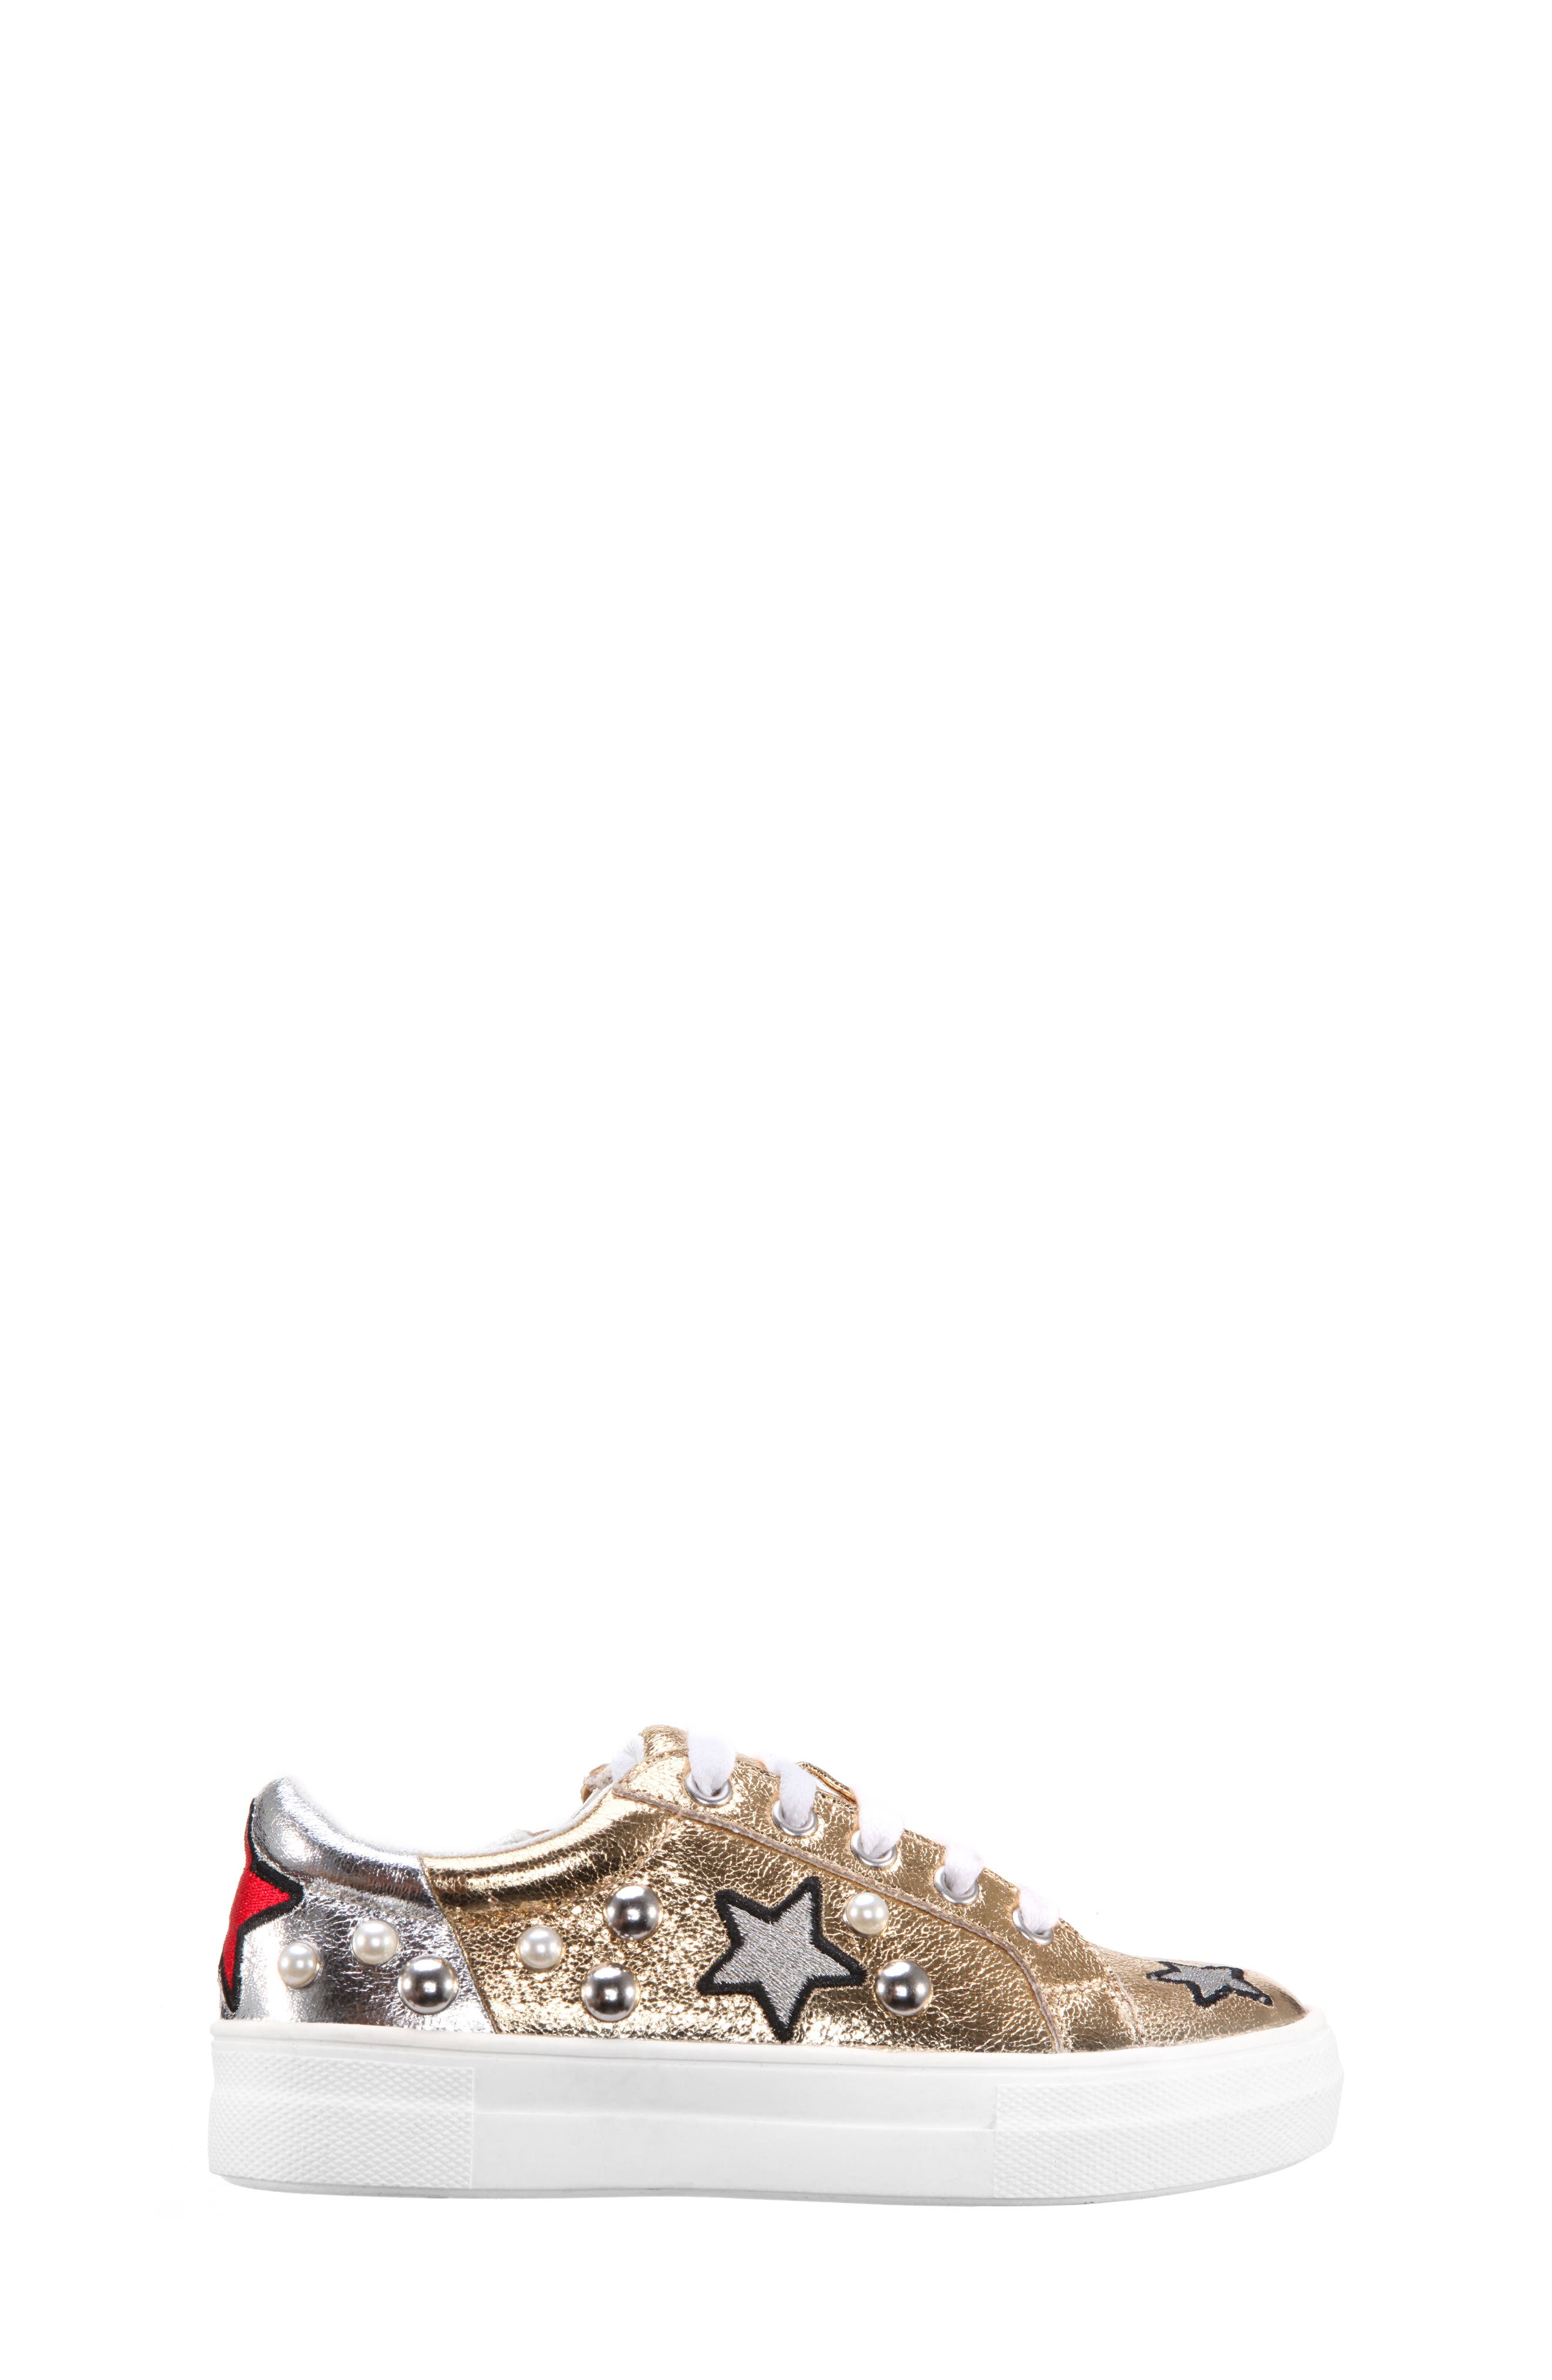 Kryslyn Metallic Sneaker,                             Alternate thumbnail 3, color,                             Platino Crackle